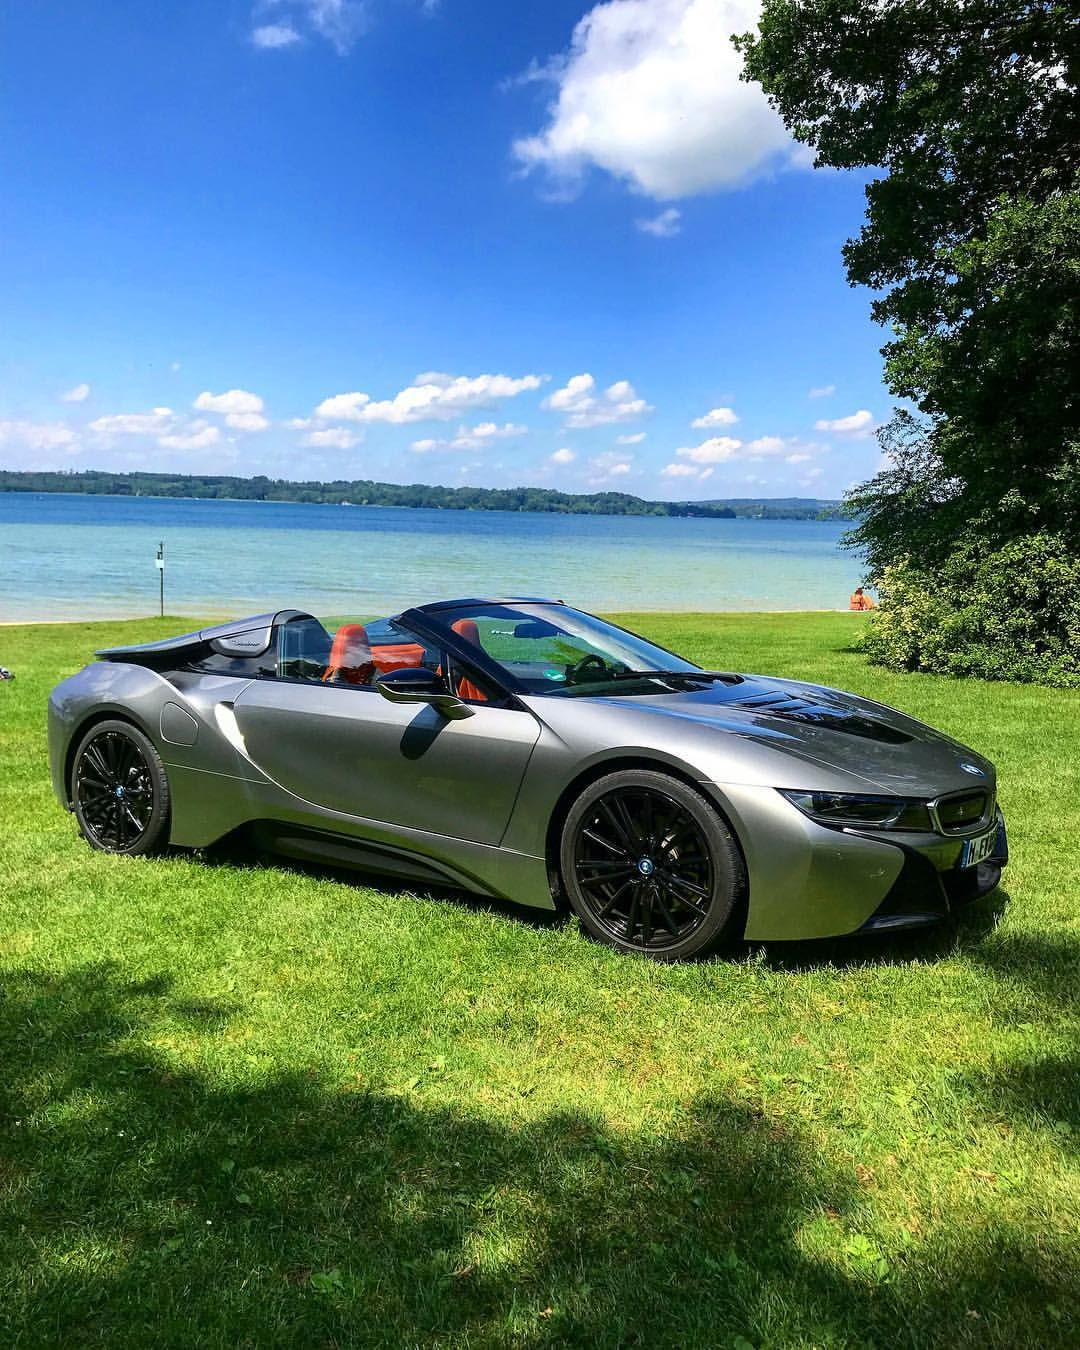 Bmw I8 Roadster: Roof Down, Sunny Day☀️ #BMW#I8#Roadster (With Images